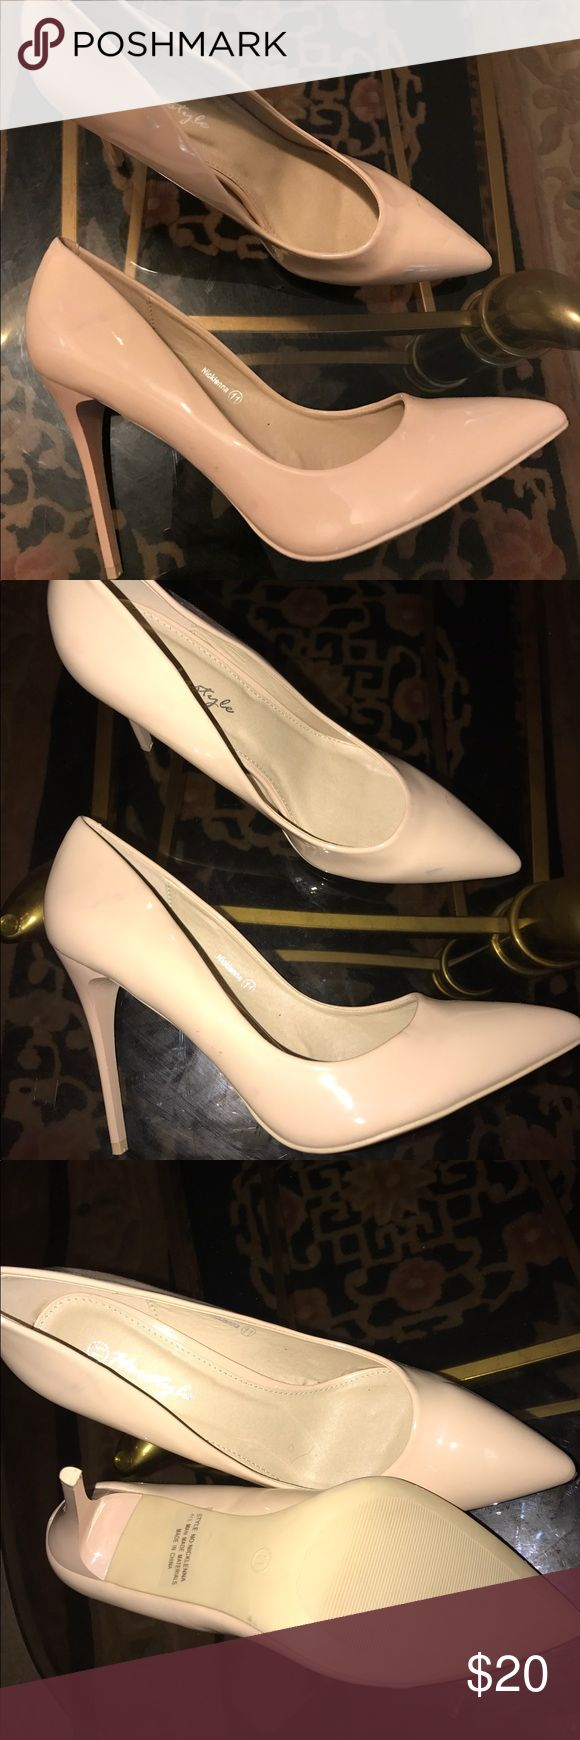 POINTY TOED HEELS Blush pink pointy toed heels. Size 11 Shoes Heels